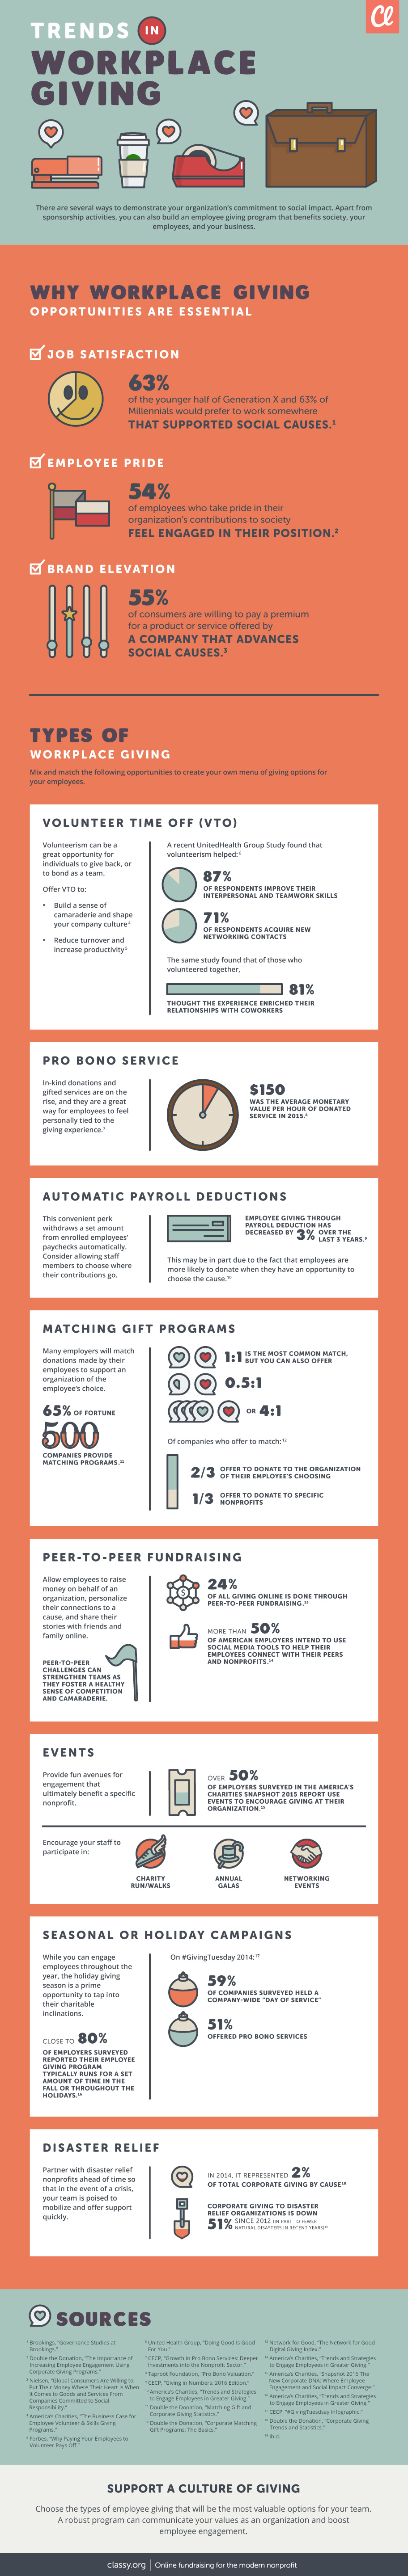 infographic workplace giving